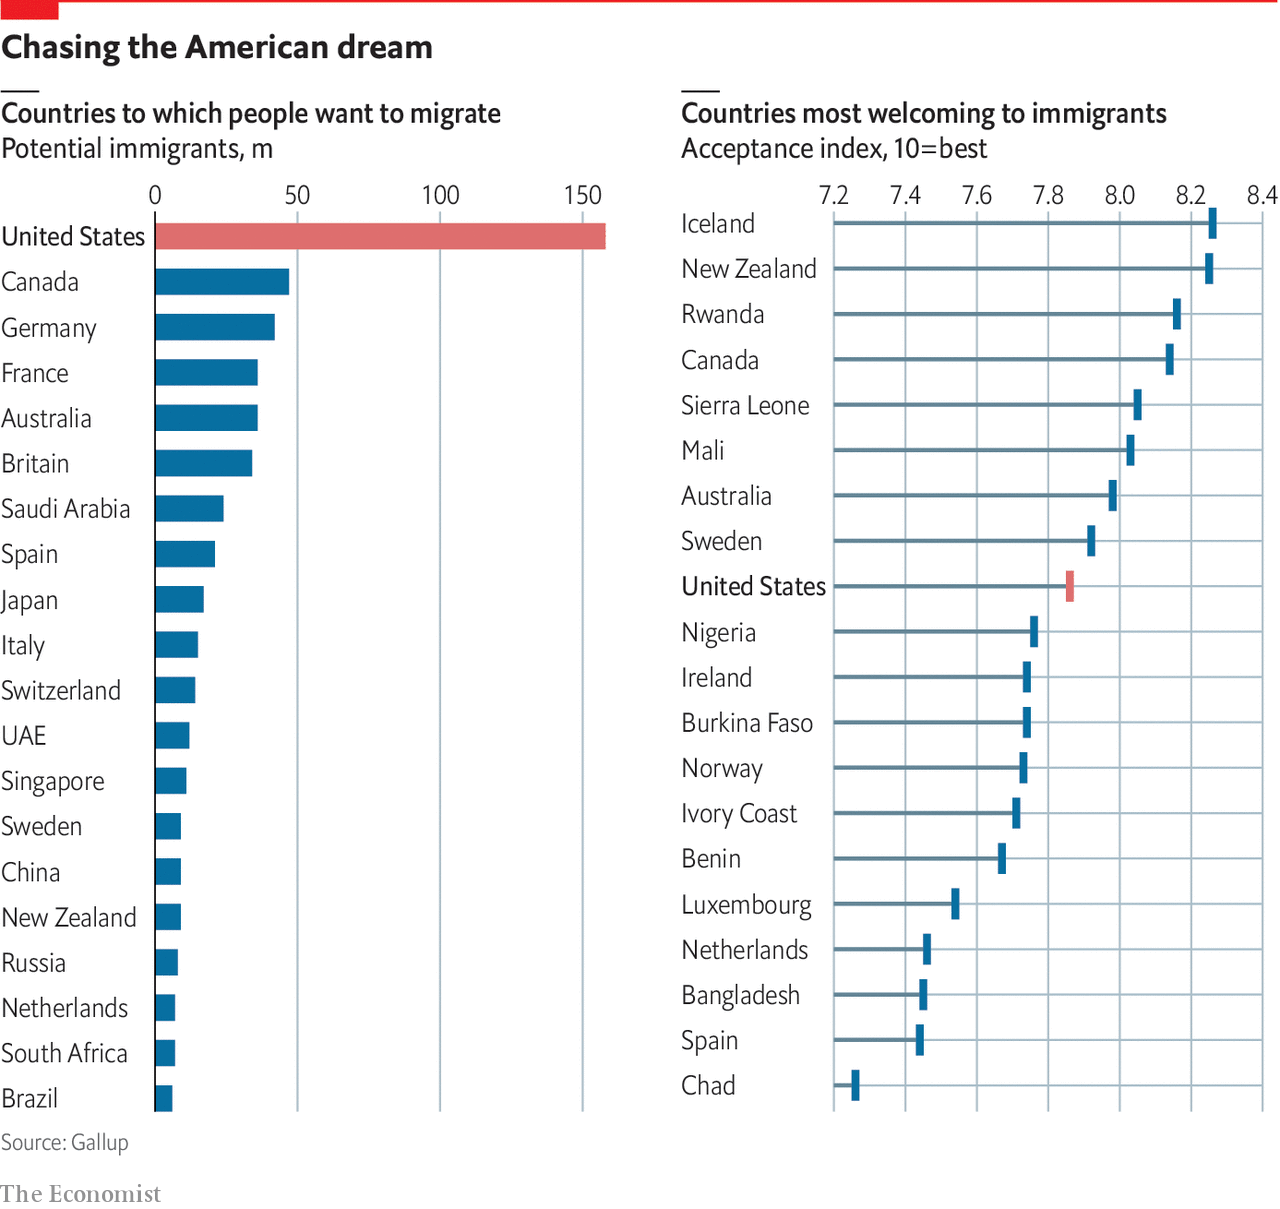 America is friendlier to foreigners than headlines suggest